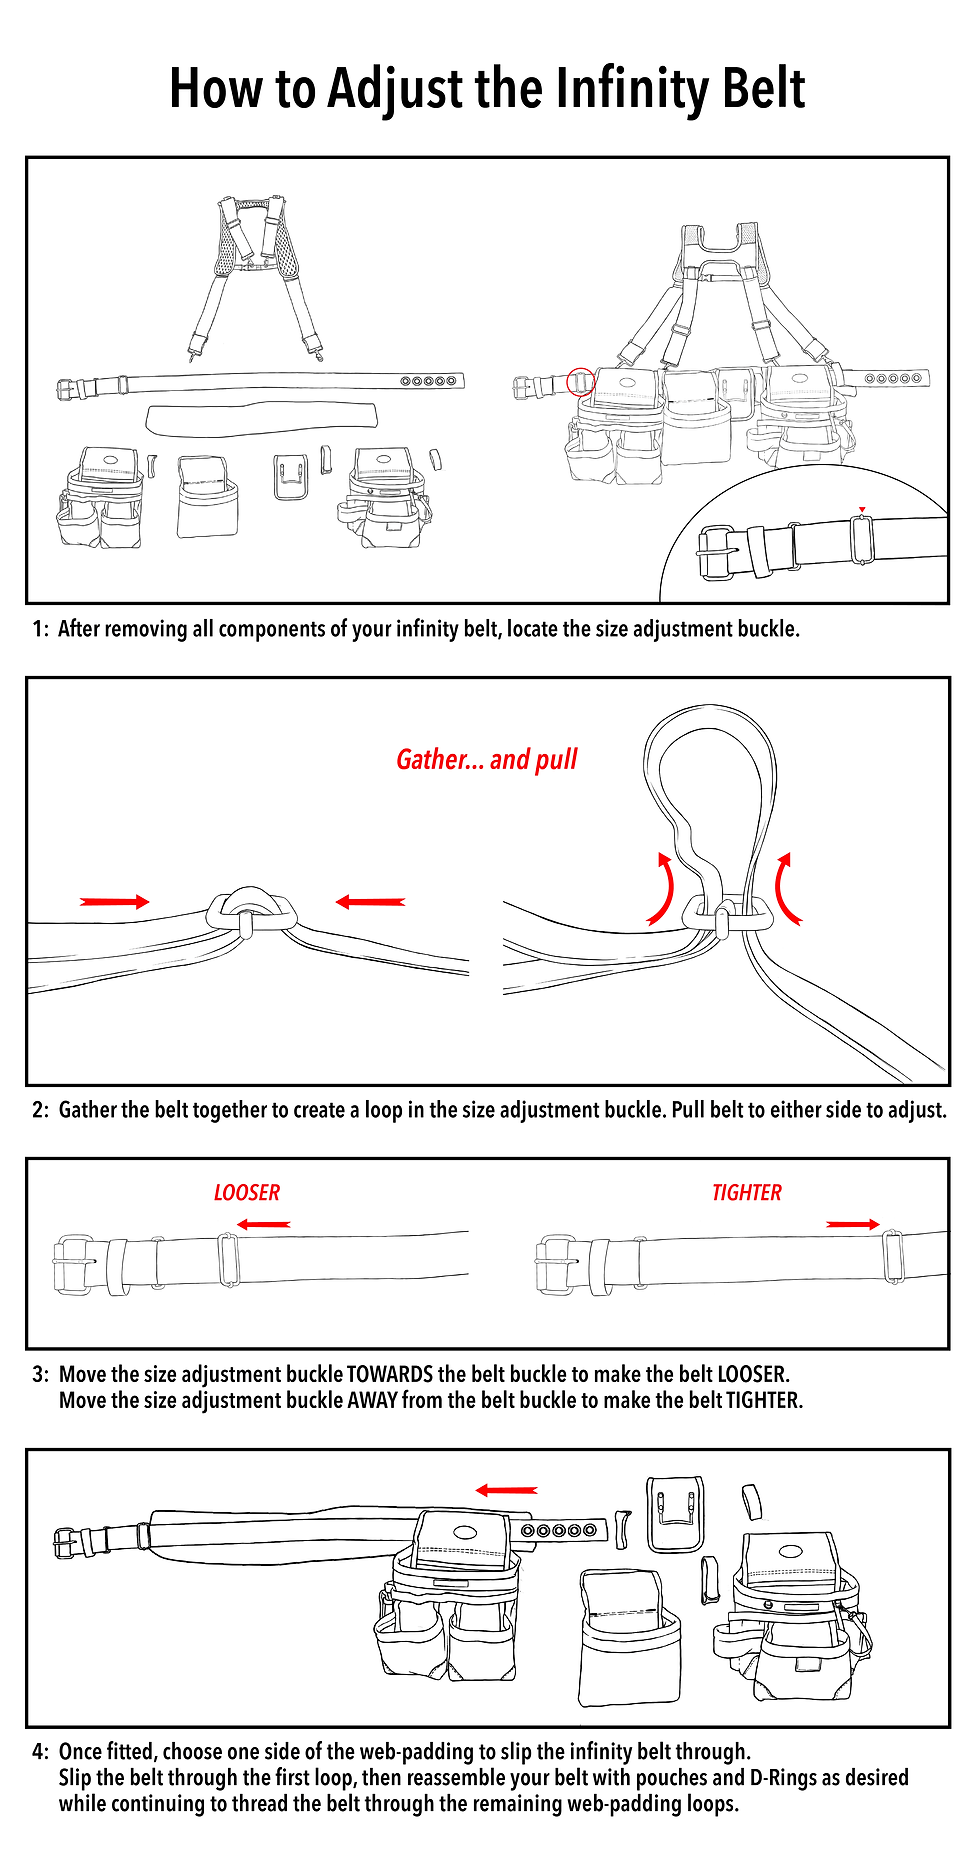 How to use Infinity Belt-01.png